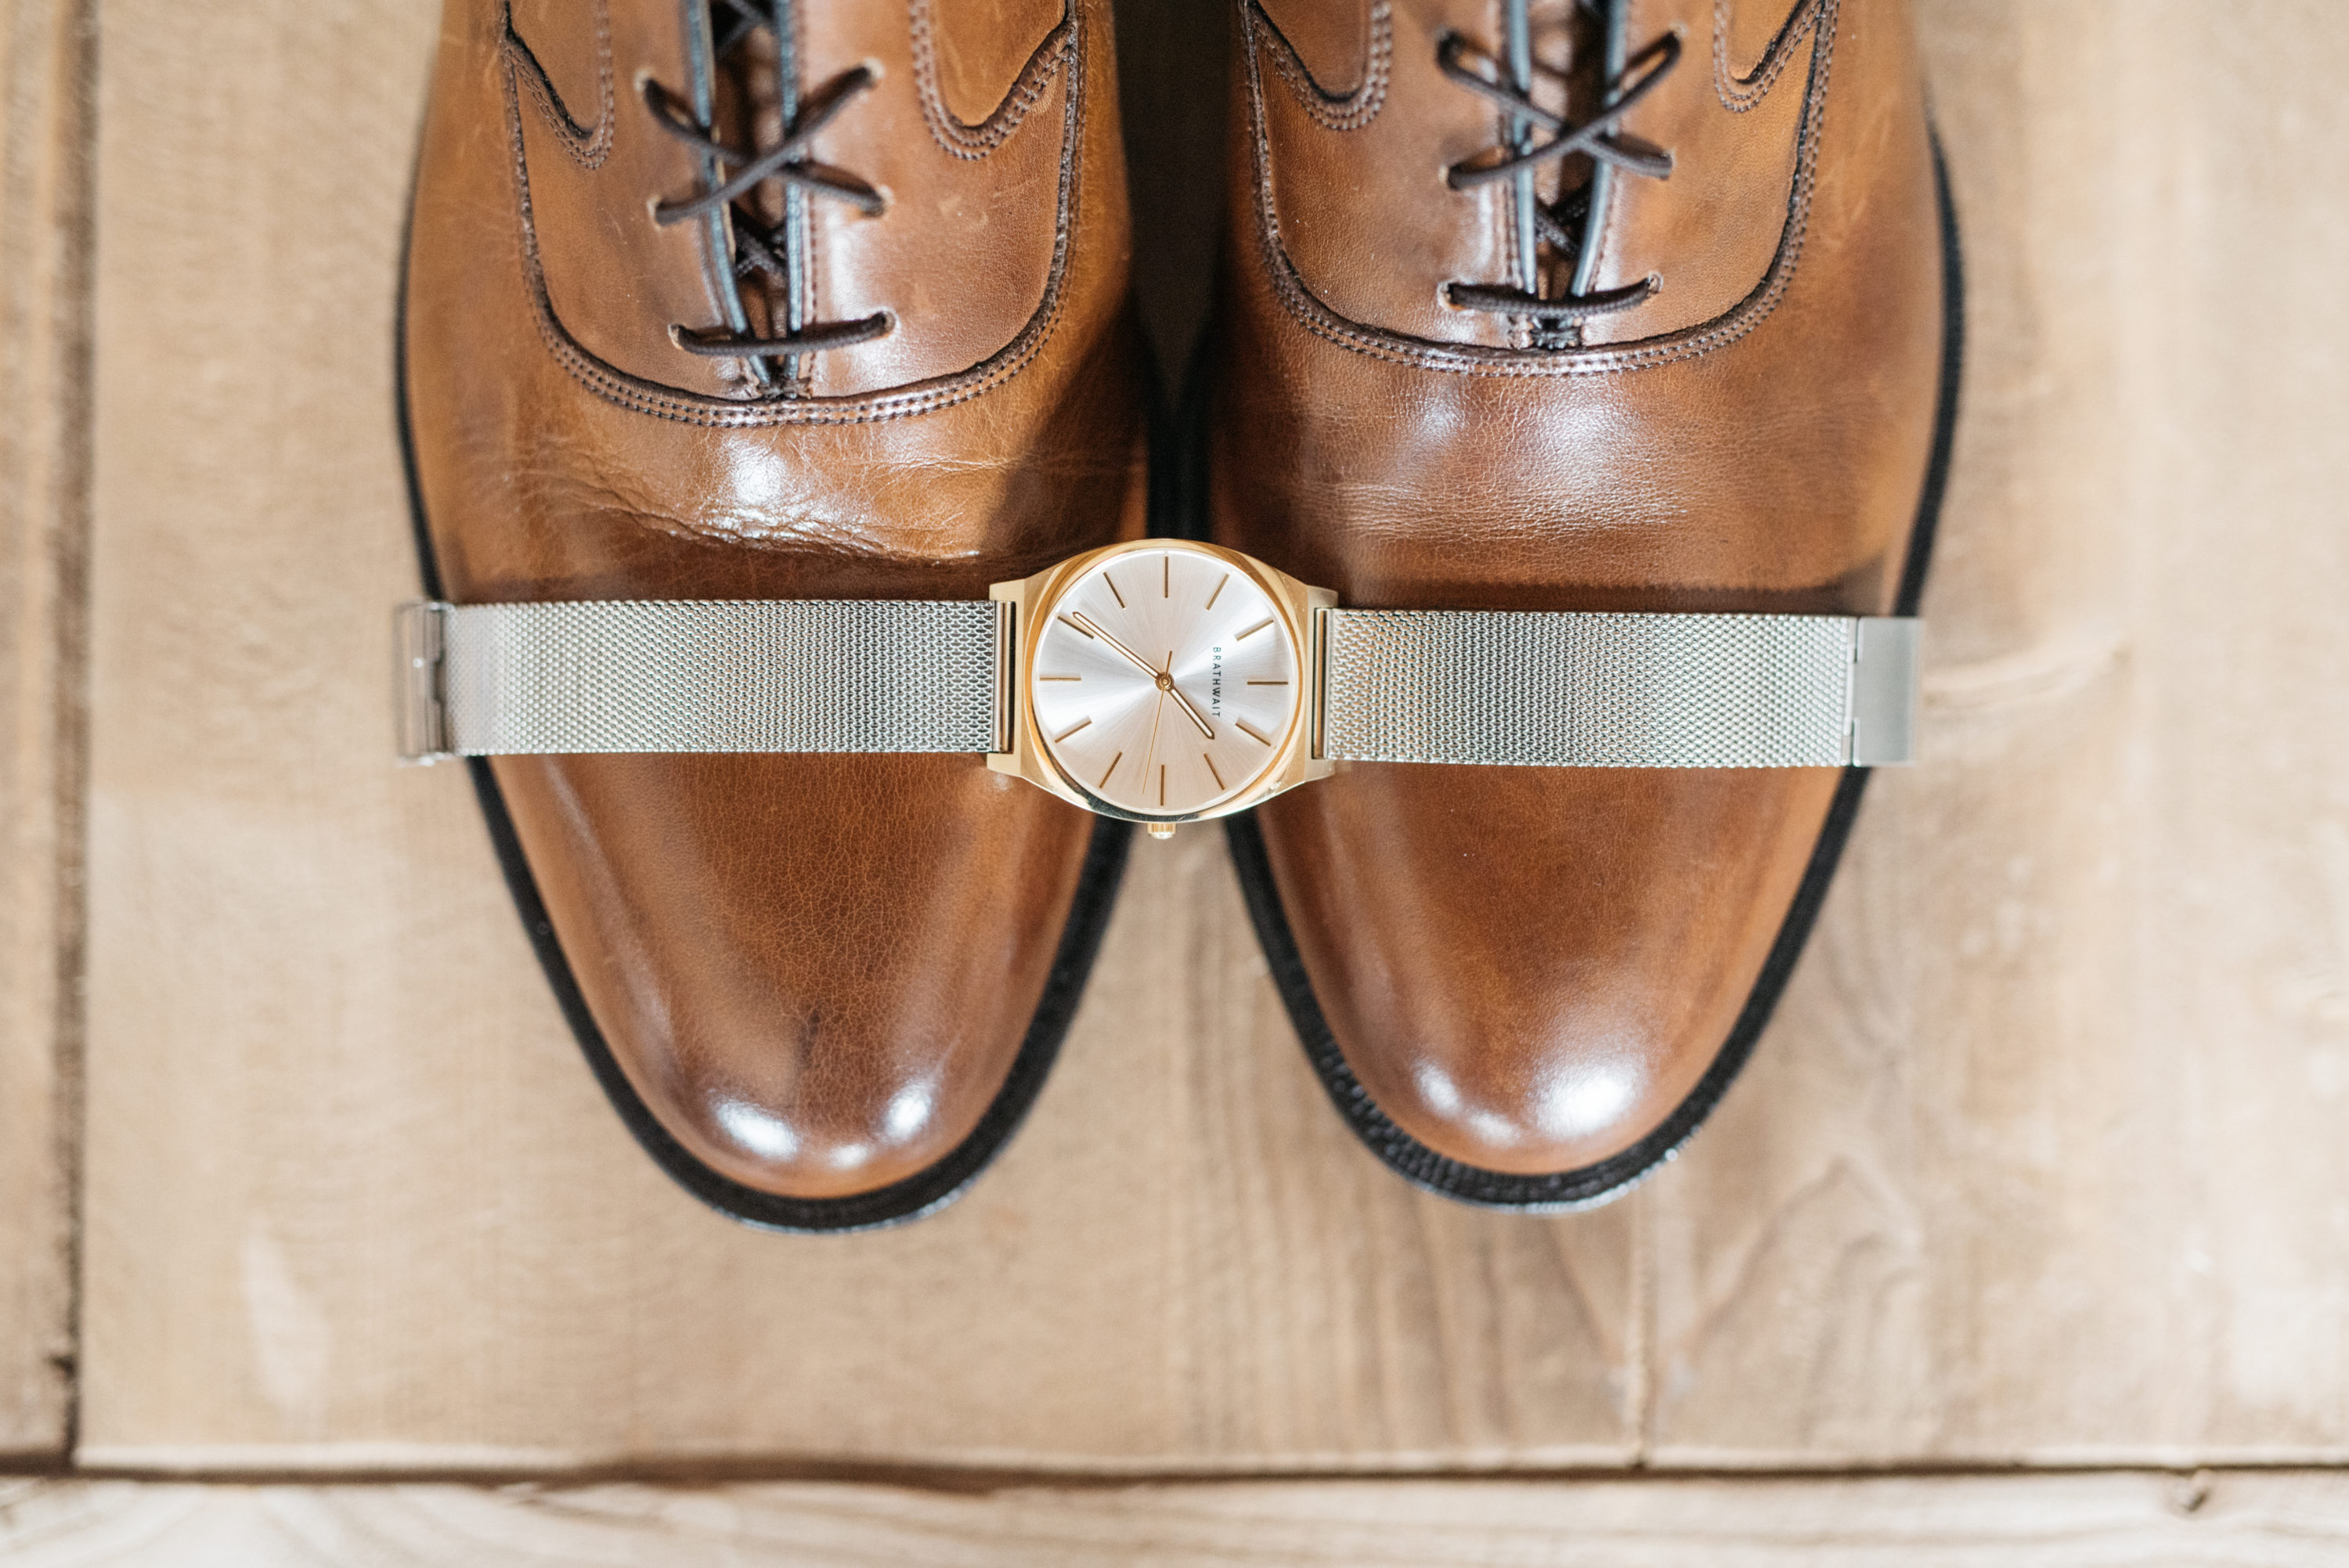 Watch and shoes - Groom wedding details